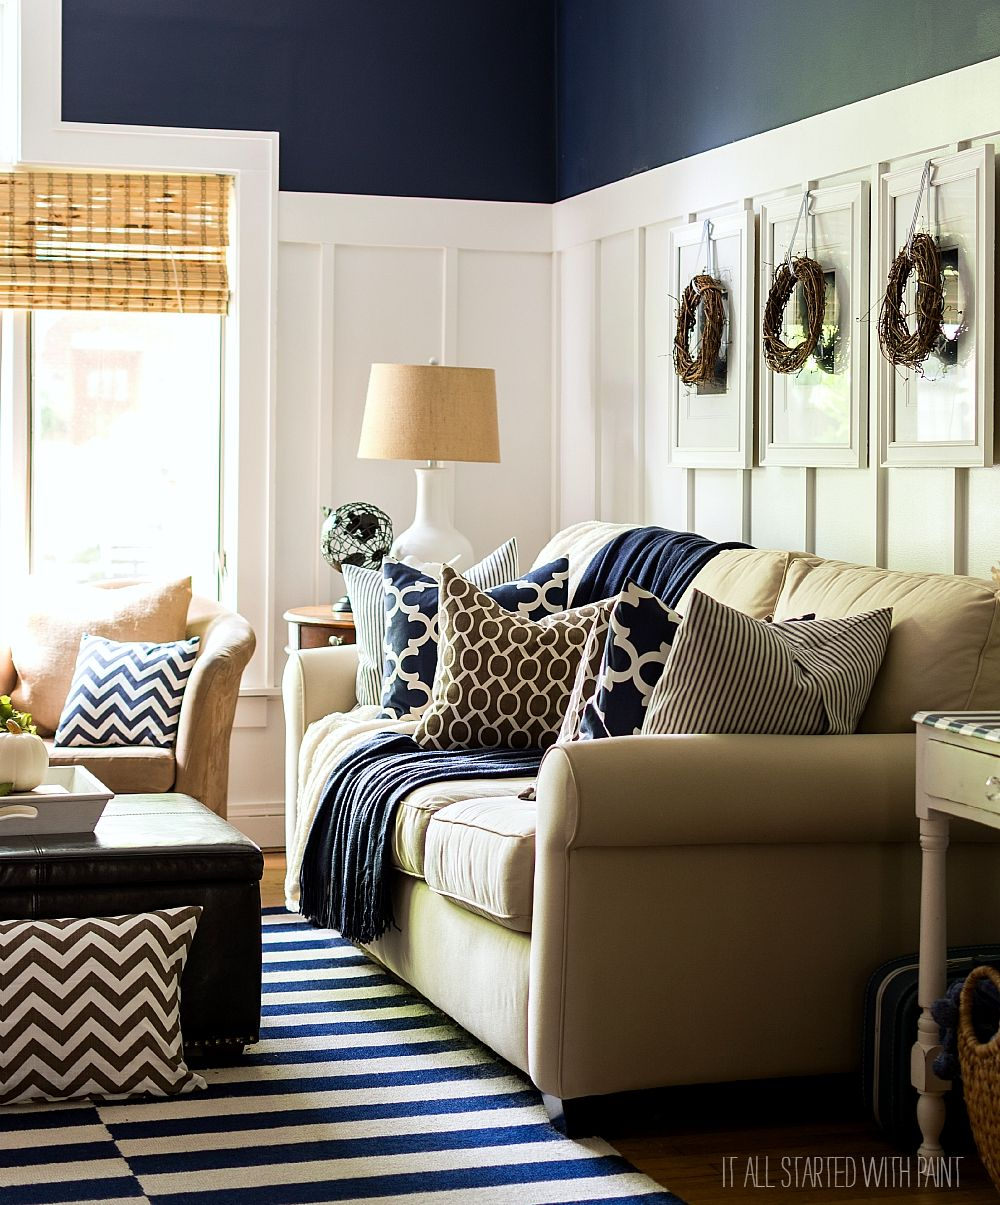 Decorating Ideas For Living Room With White Walls: Fall Decor In Navy And Blue